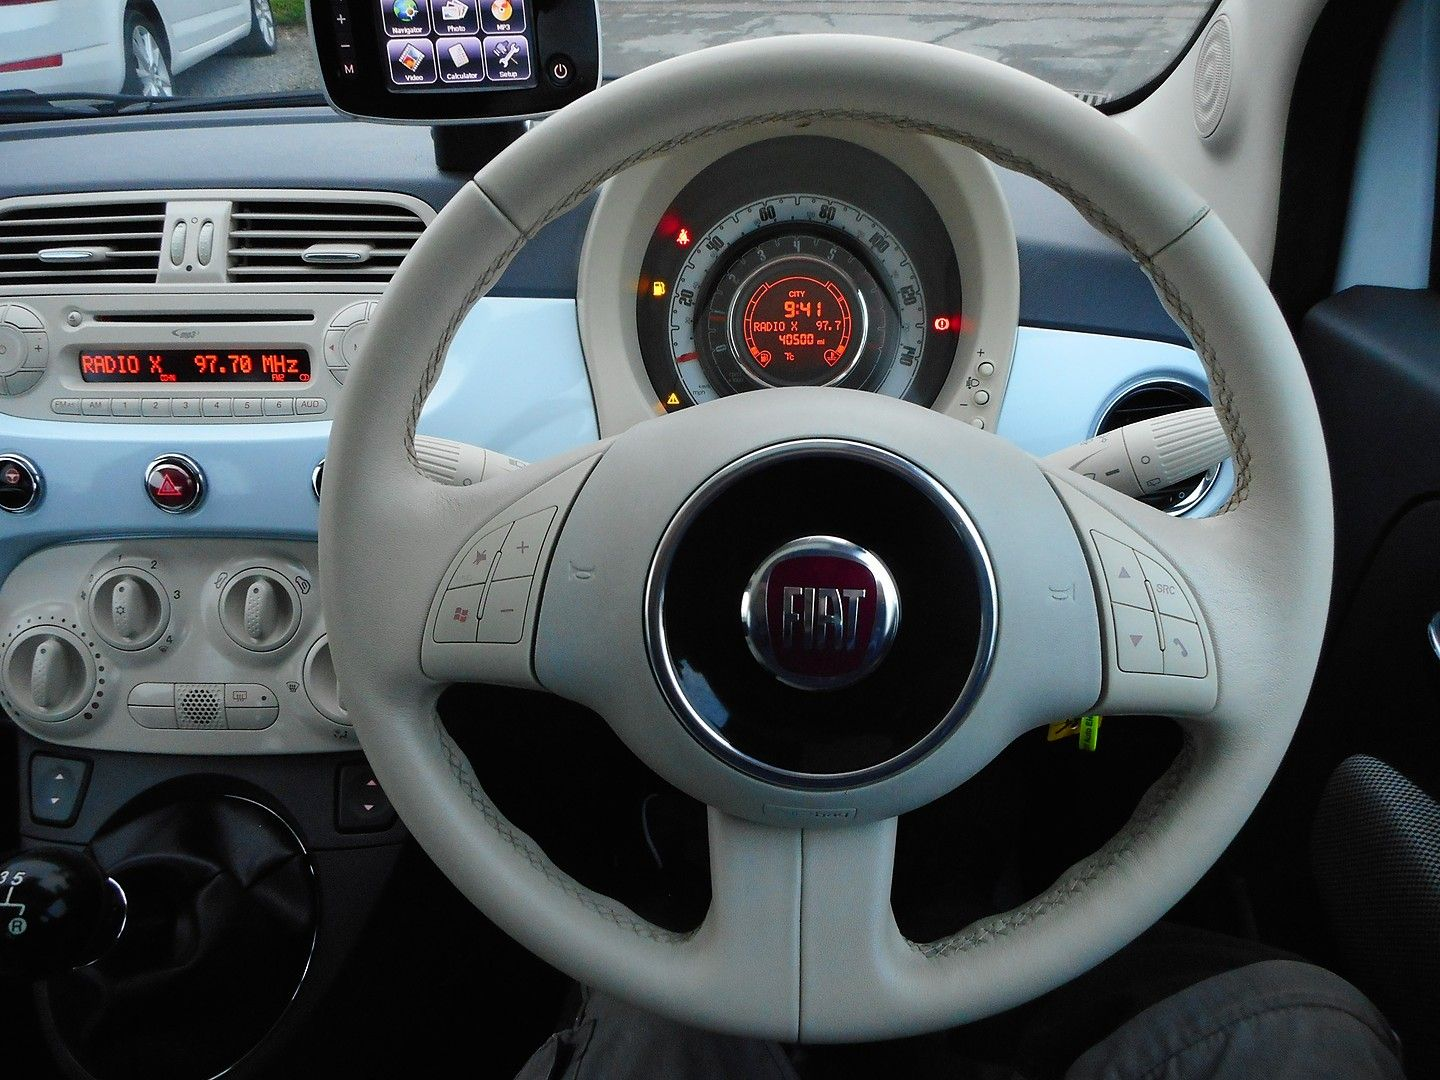 FIAT 500 1.2i Lounge (2010) - Picture 14